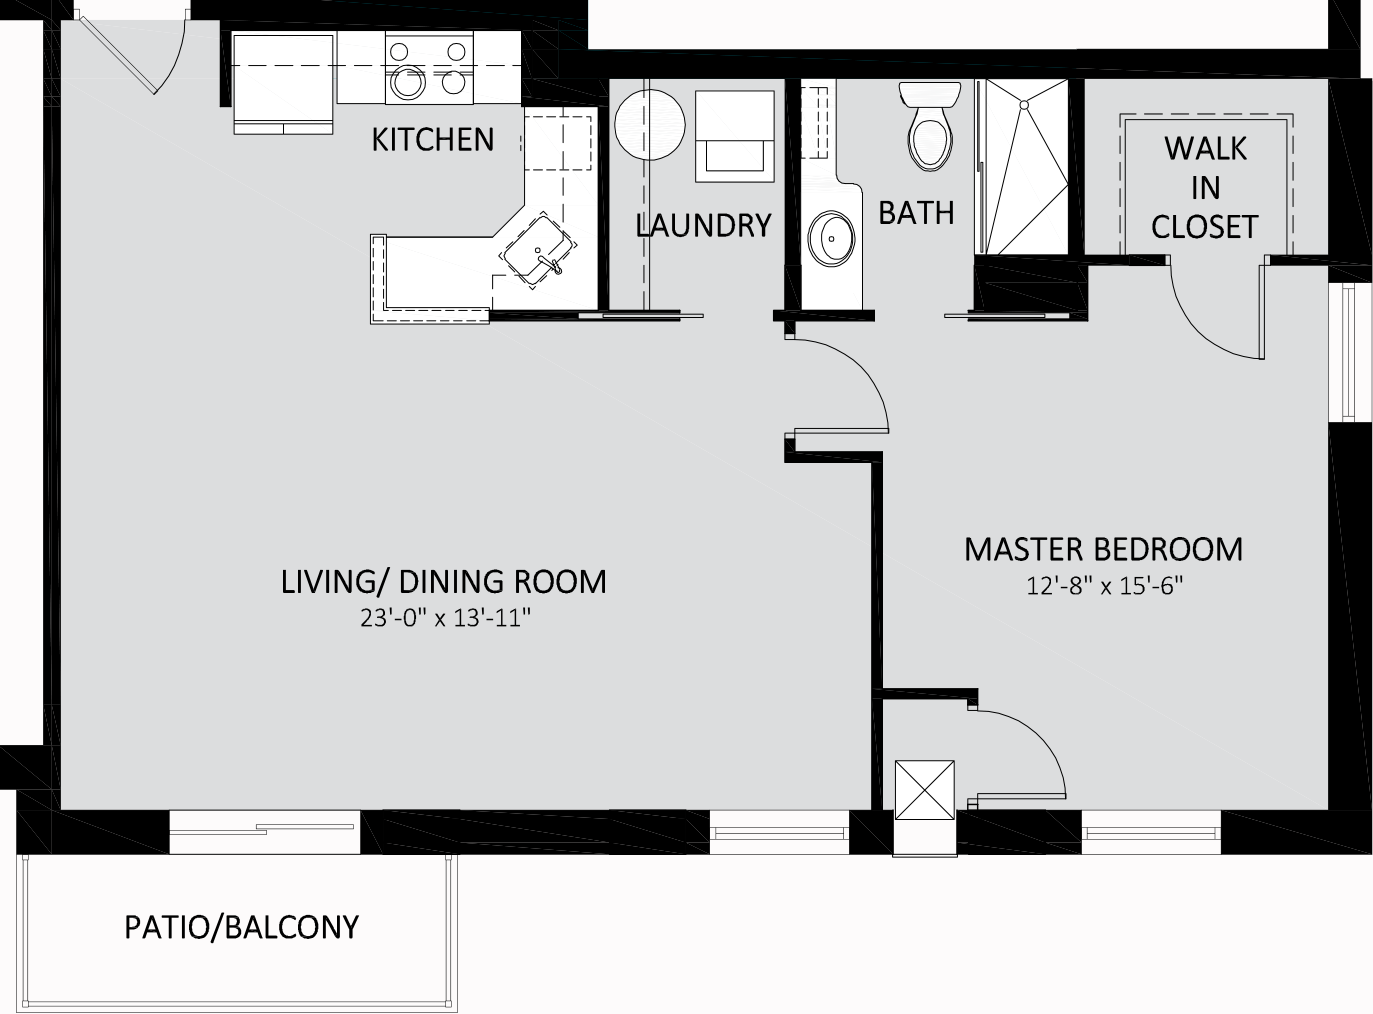 GE Independence II Contemporary One Bedroom-Great Room 770 Sq Ft.png